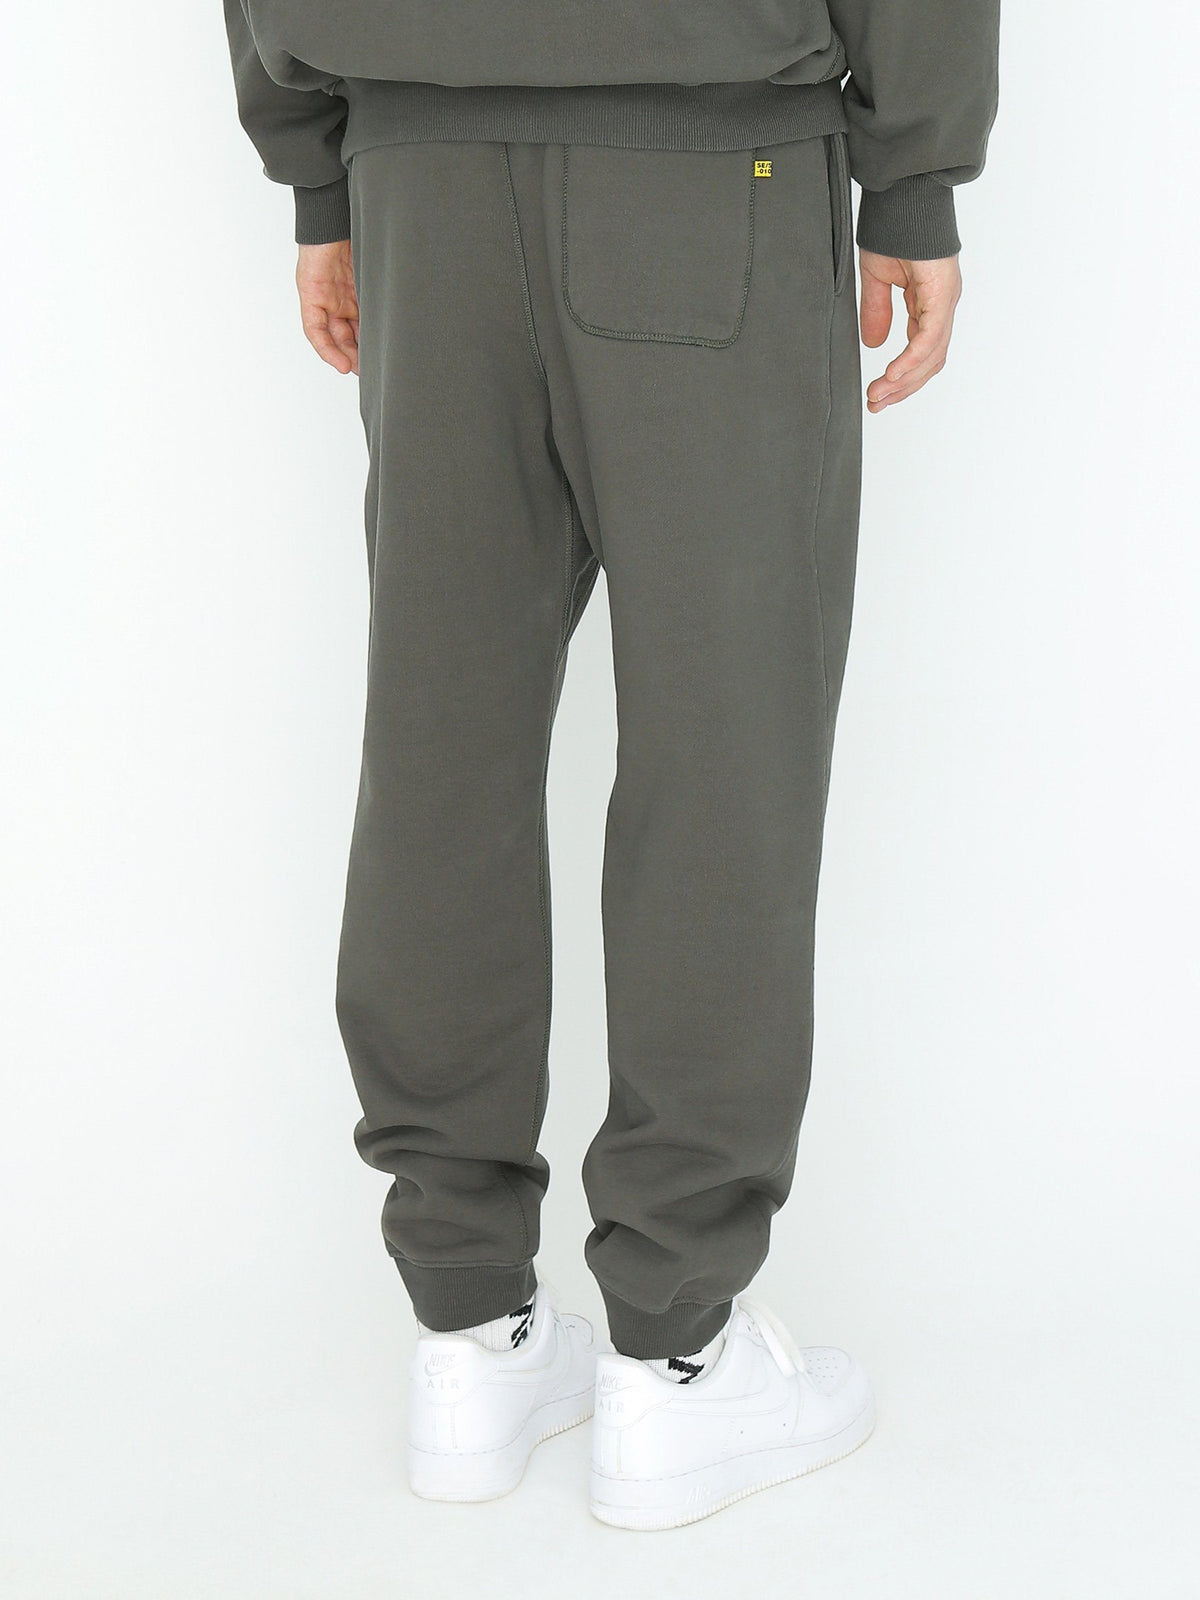 NEW SPORT Sweatpant Pants